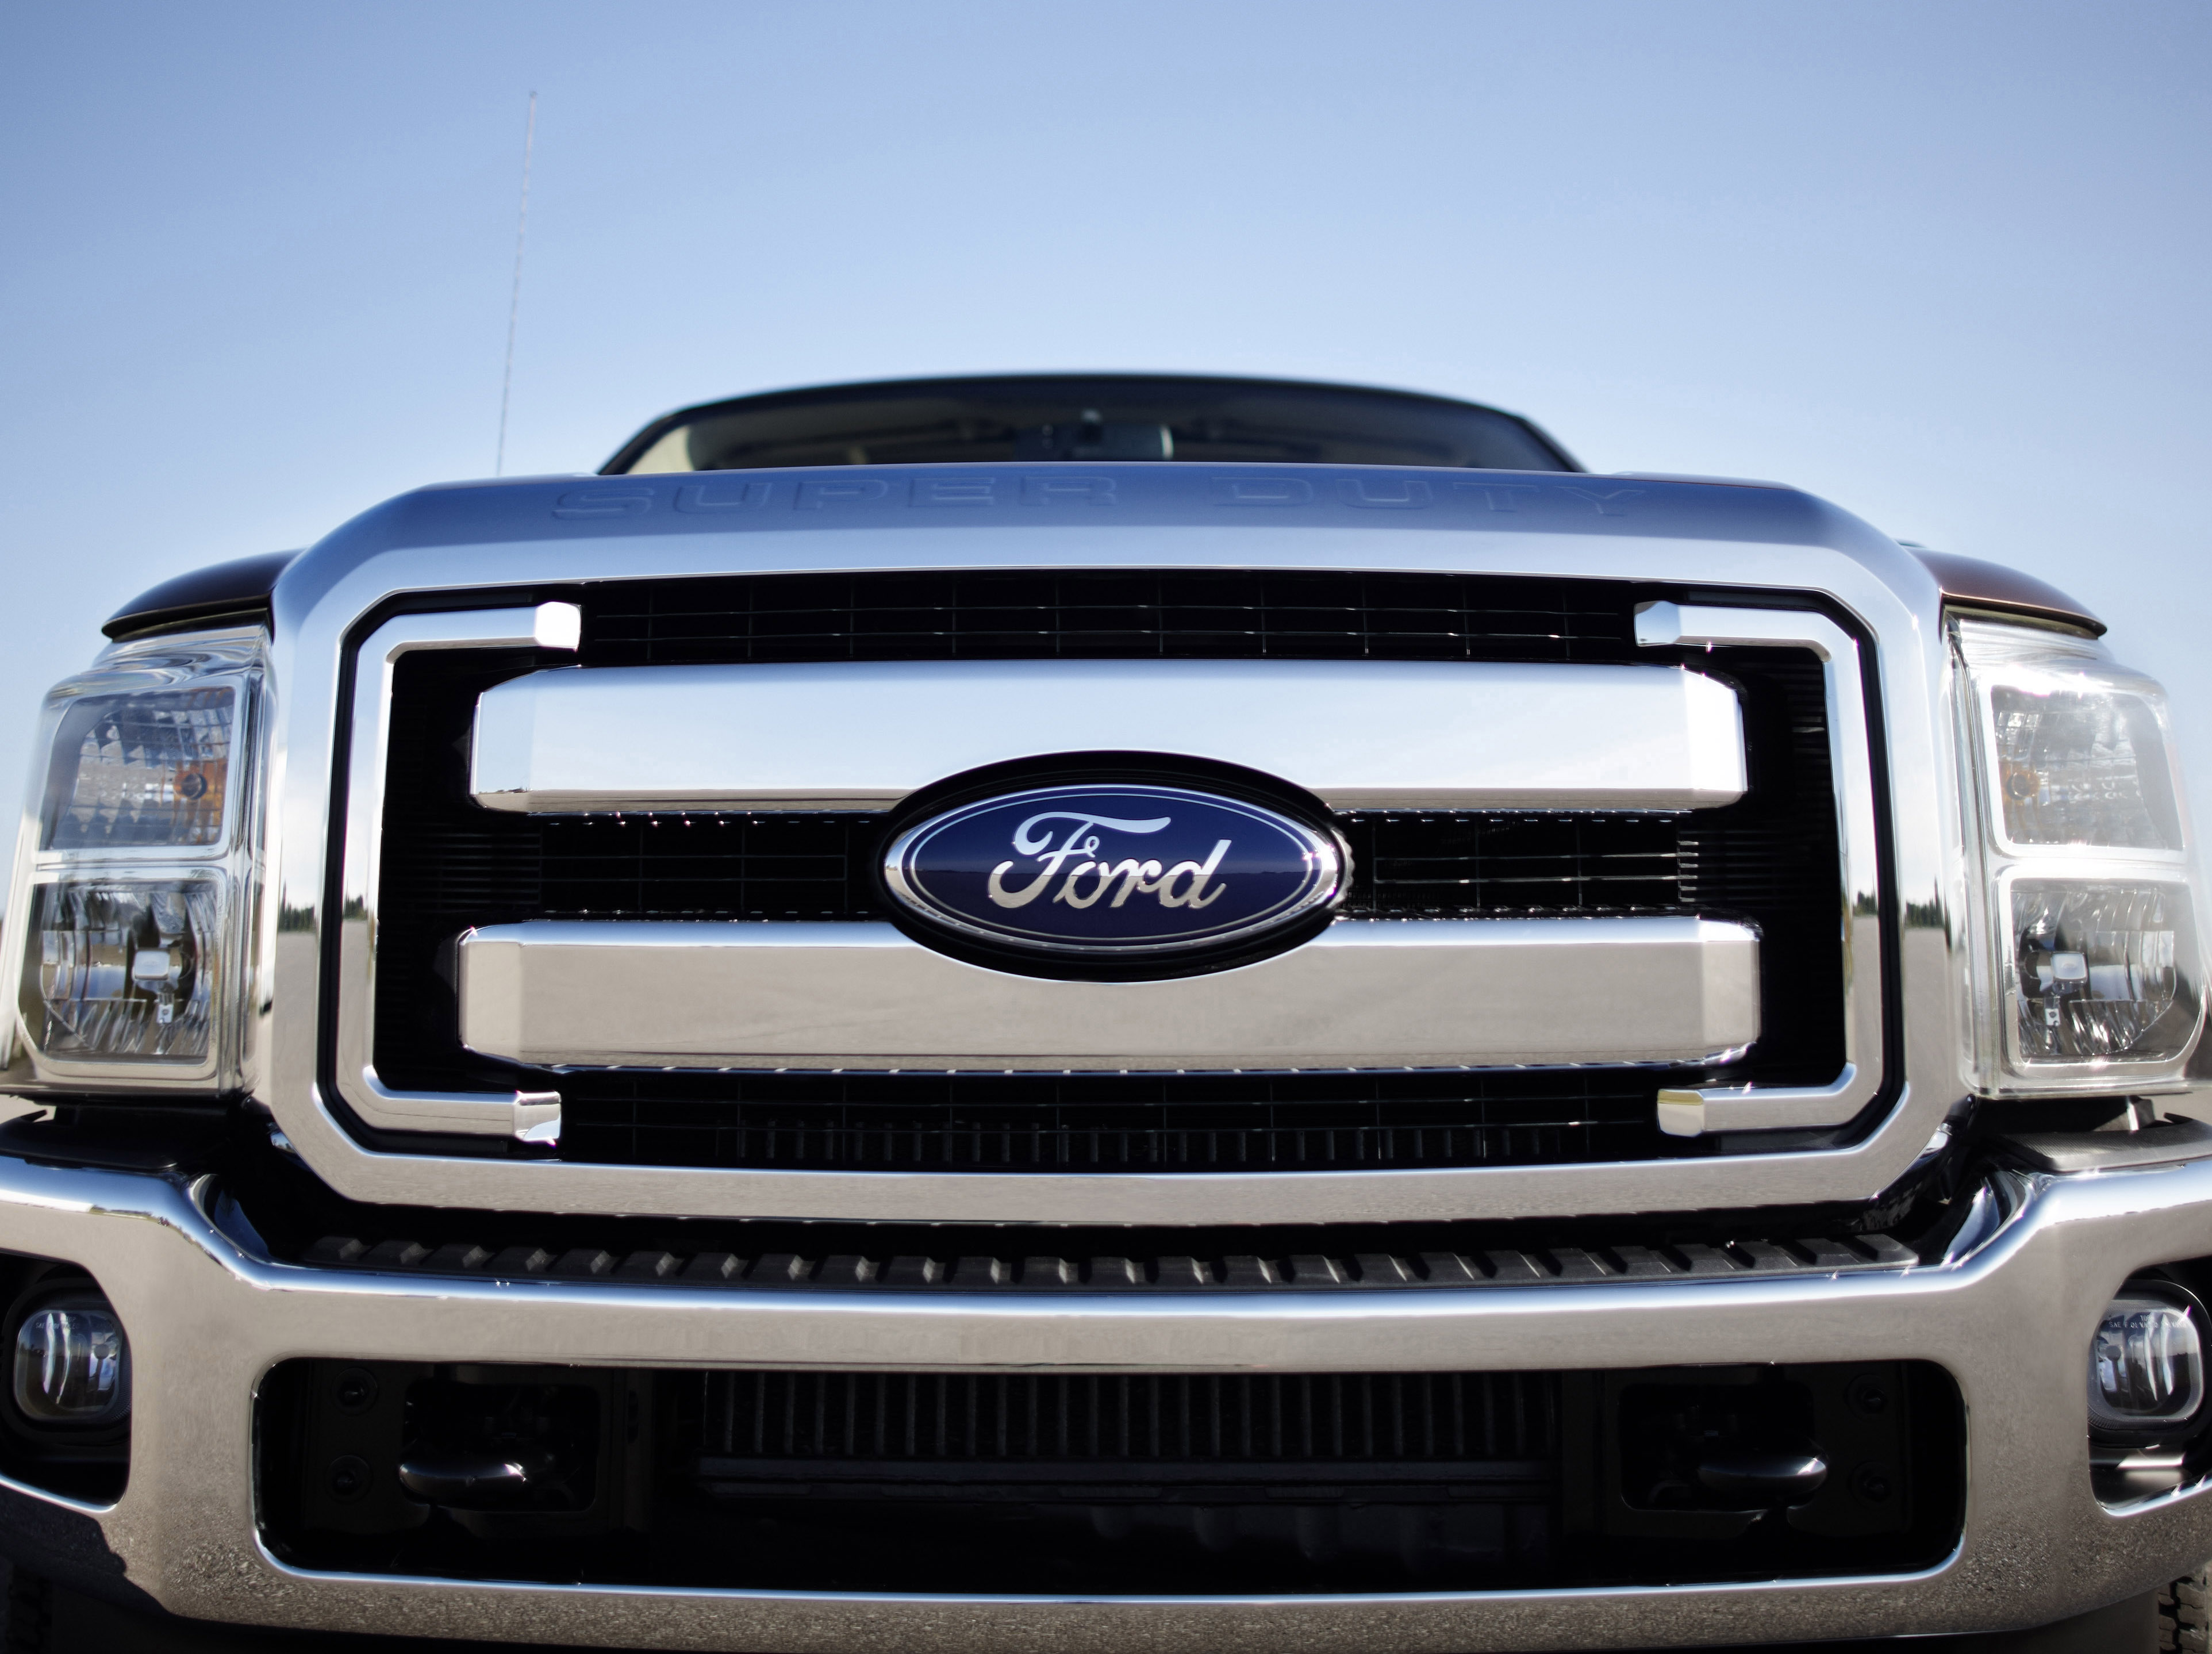 ford f series super duty 2011 cartype rh cartype com Ford F 250 Maintenance Manual Ford F 250 Maintenance Manual